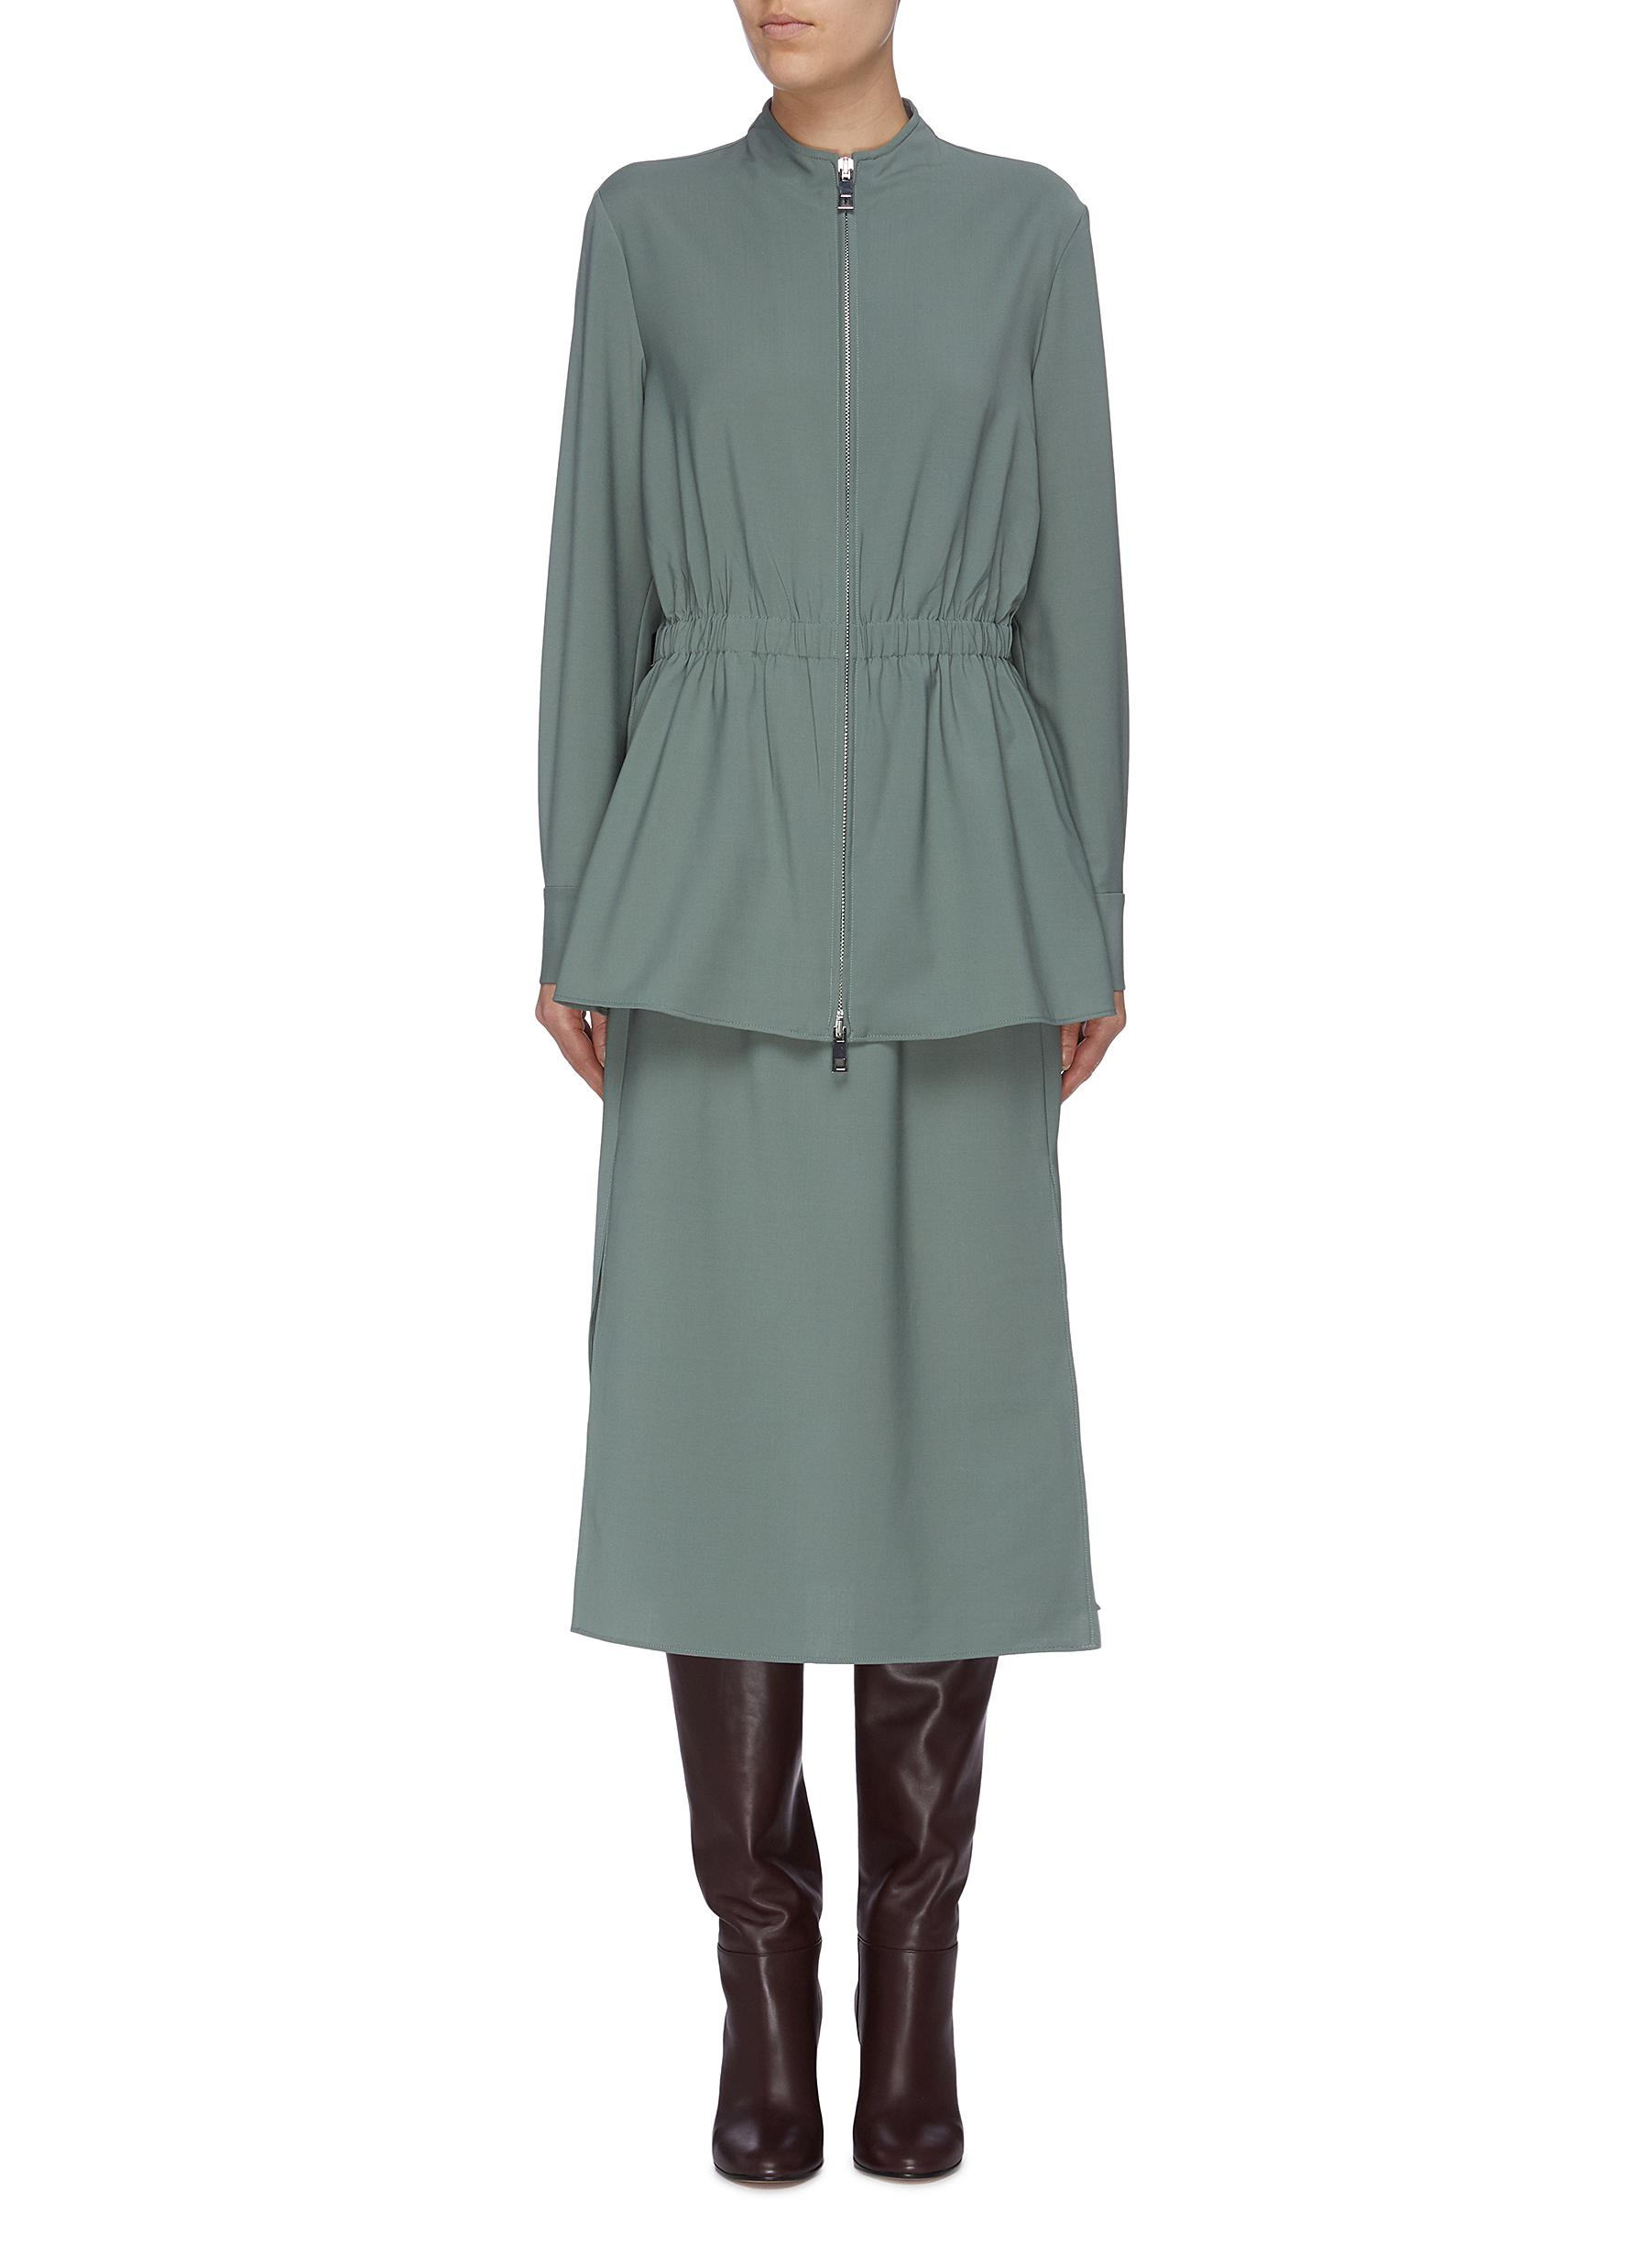 Layered ruched waist dress by Tibi